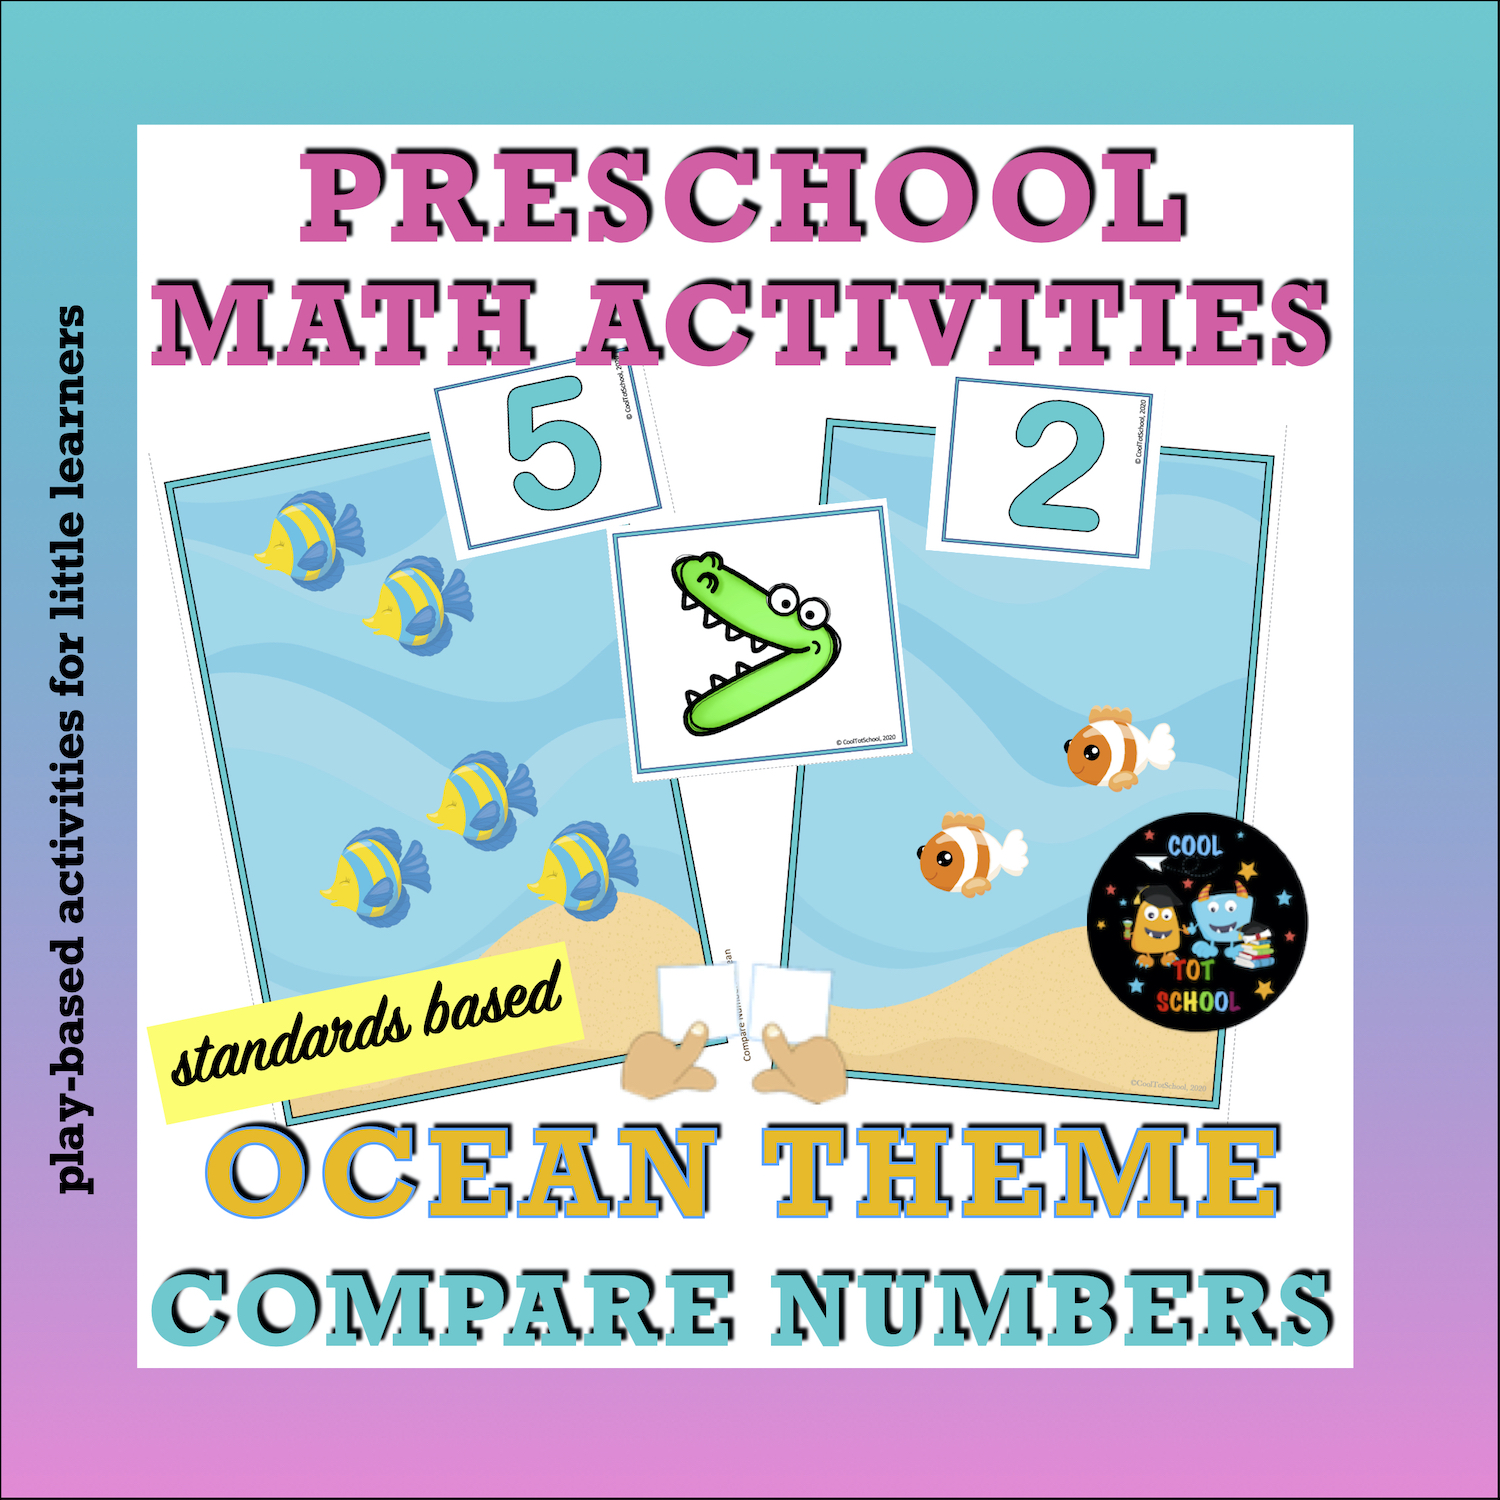 comparing quantities of fishes child's math activities